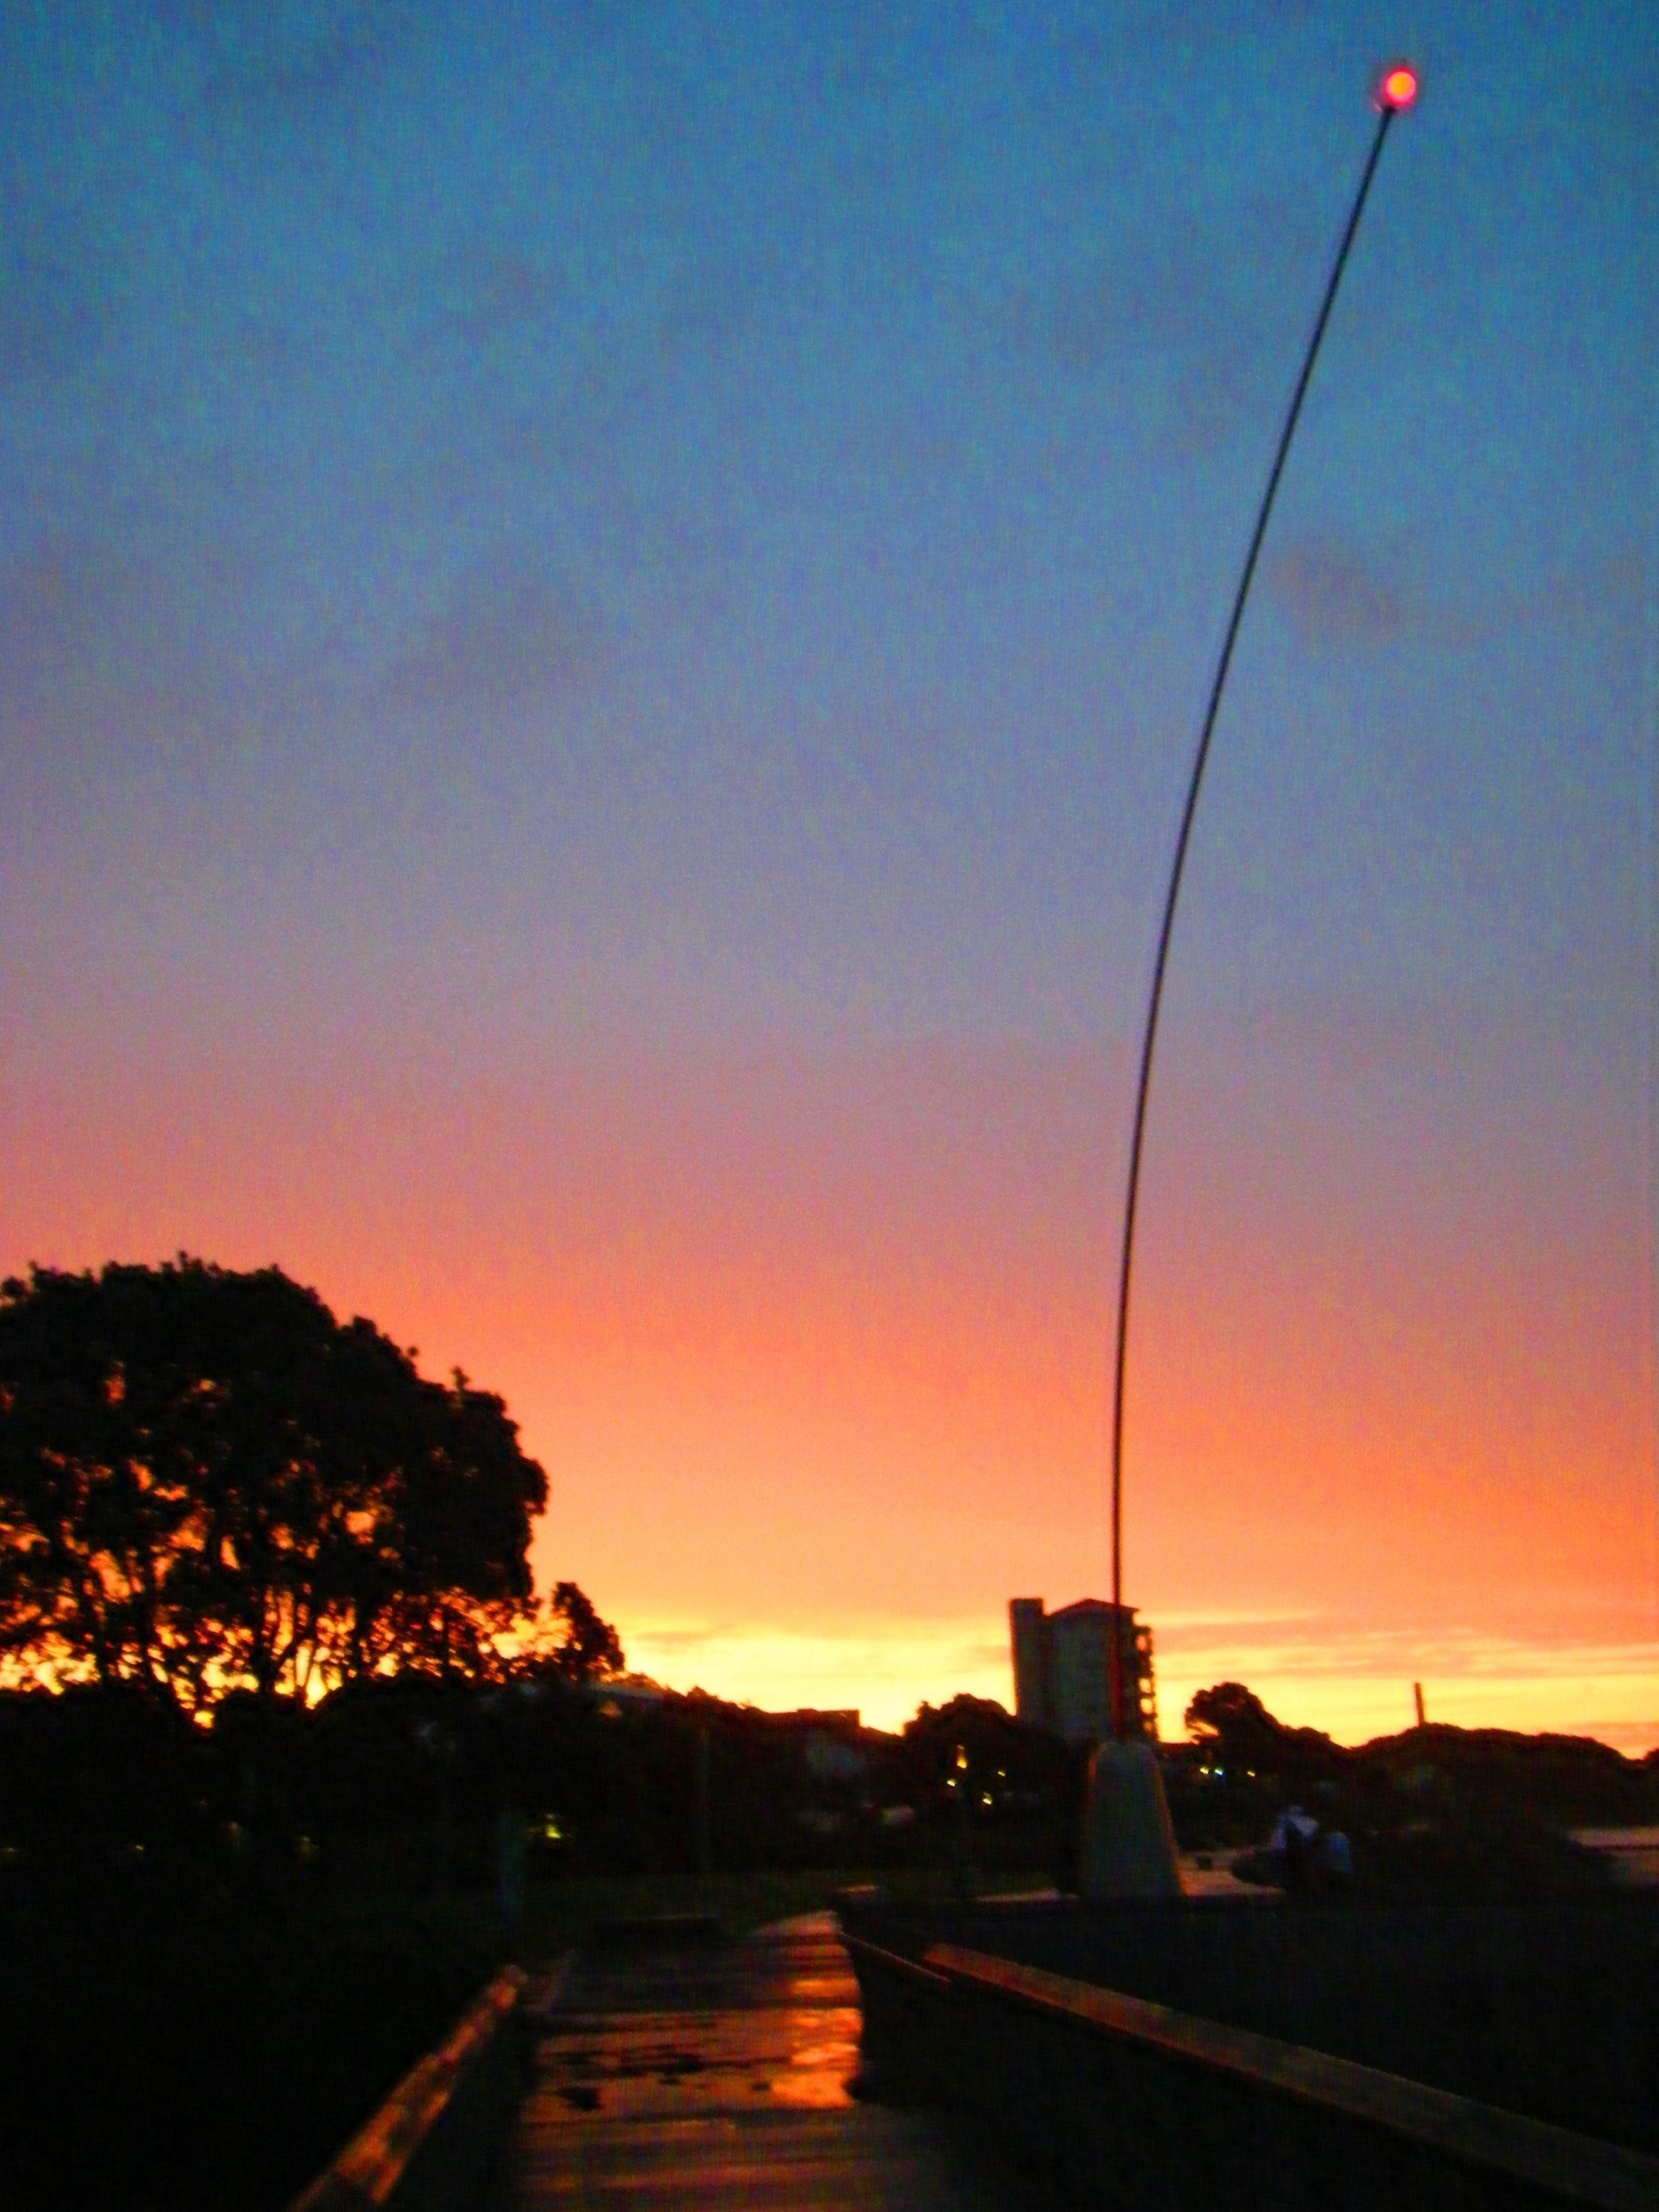 Sunset at the Len Lye wind wand, New Plymouth.